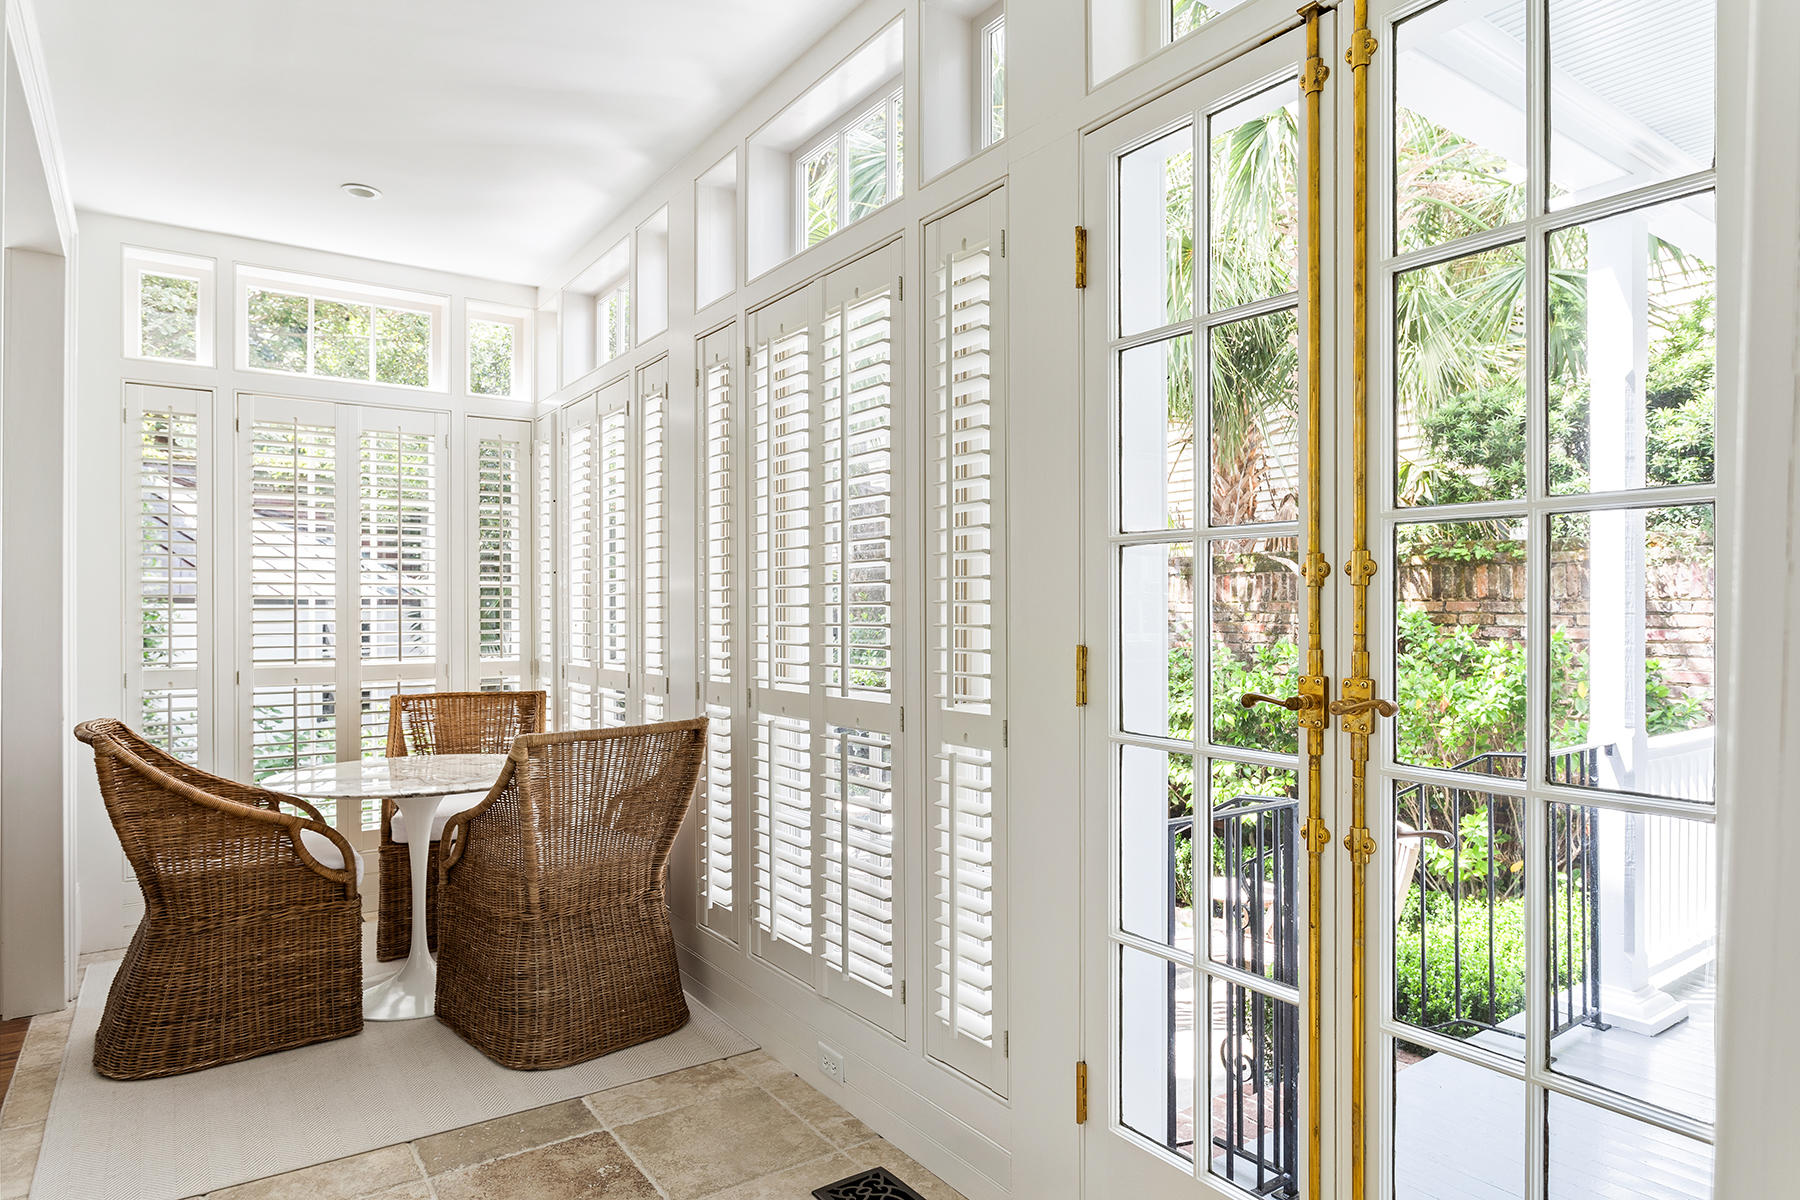 South of Broad Homes For Sale - 3 Atlantic, Charleston, SC - 1